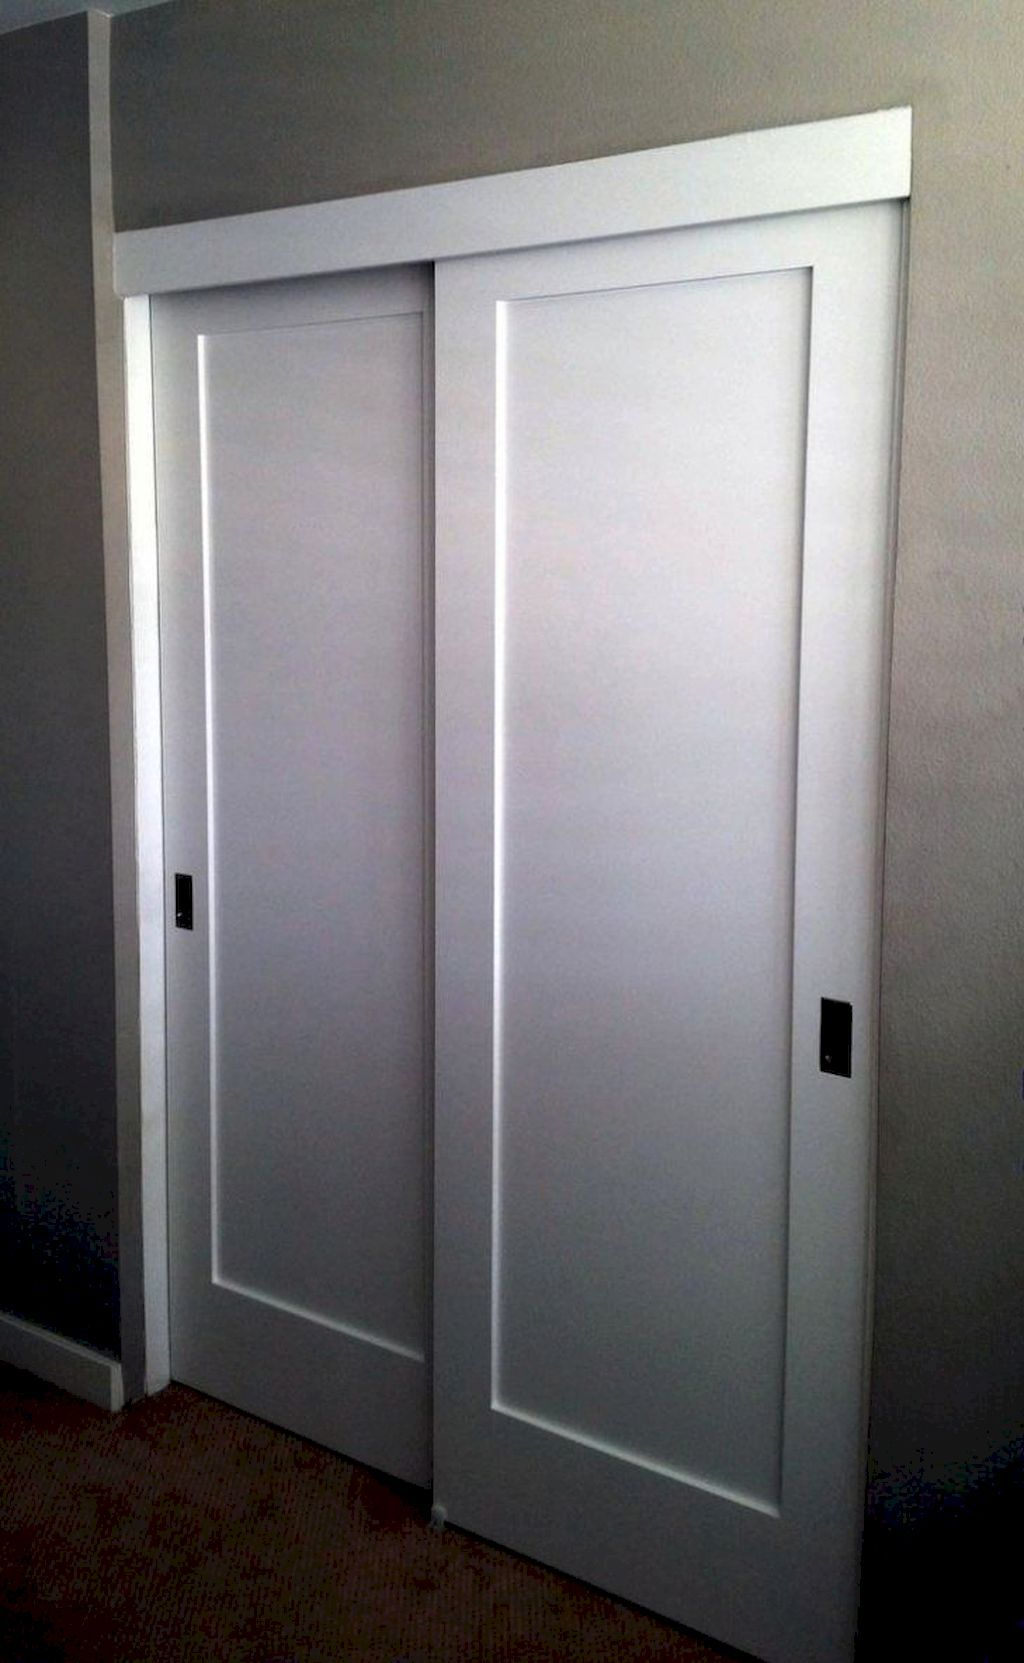 Closet Door Concepts That Add Model To Your Bed room images